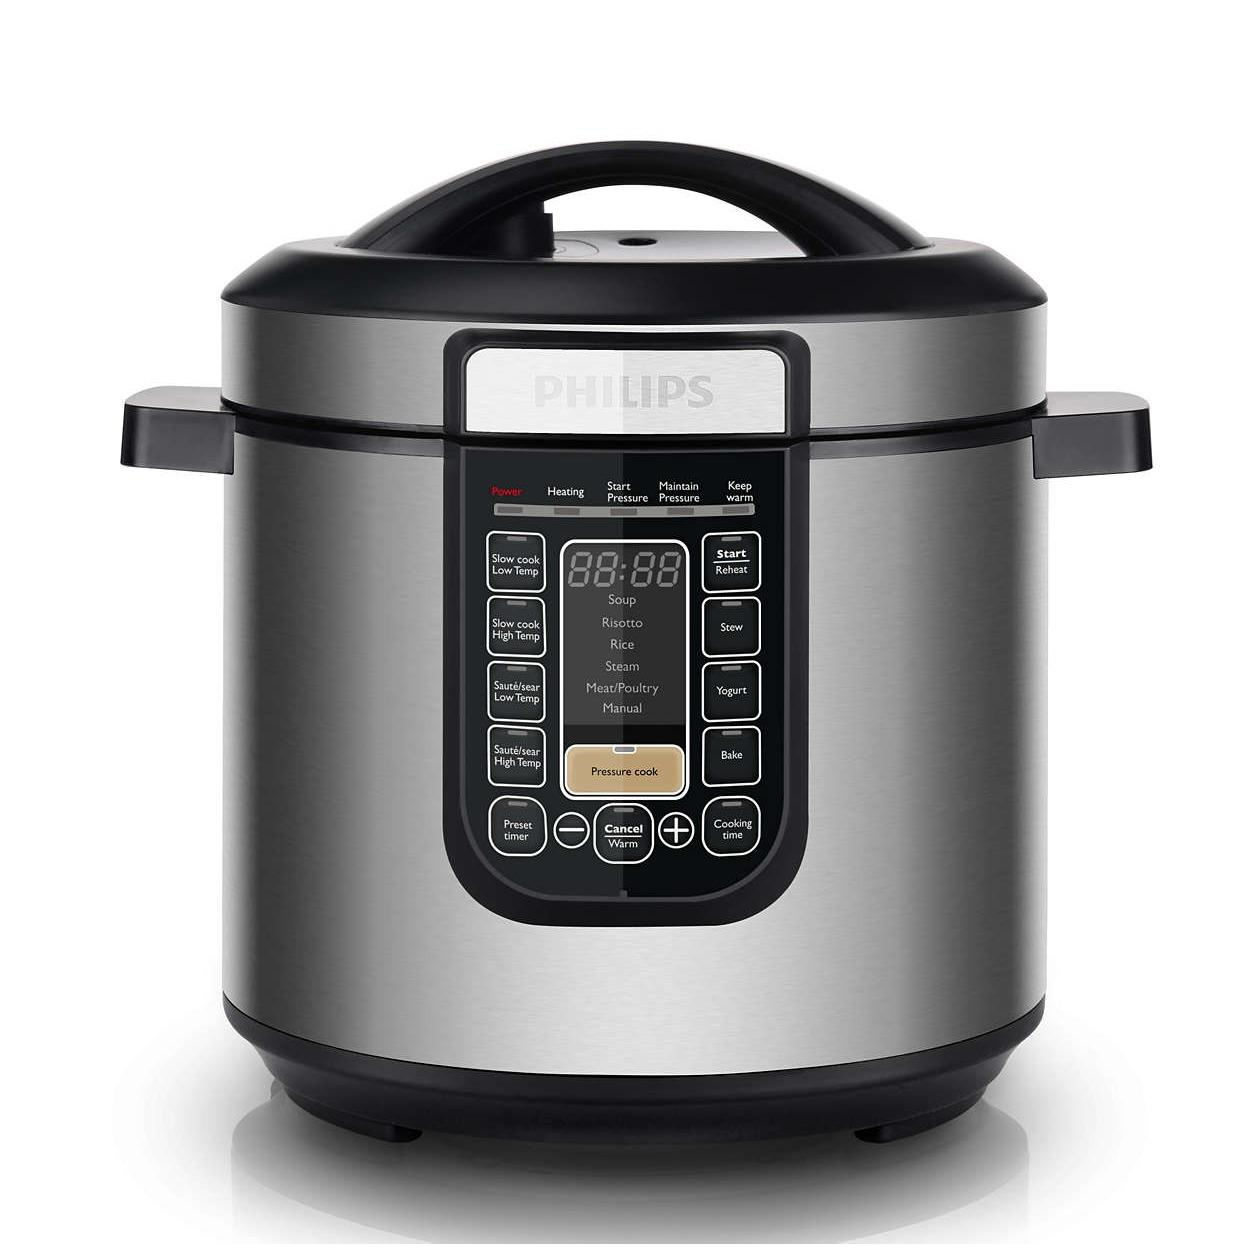 Best Buy Philips Hd2137 62 Viva Collection All In One Cooker